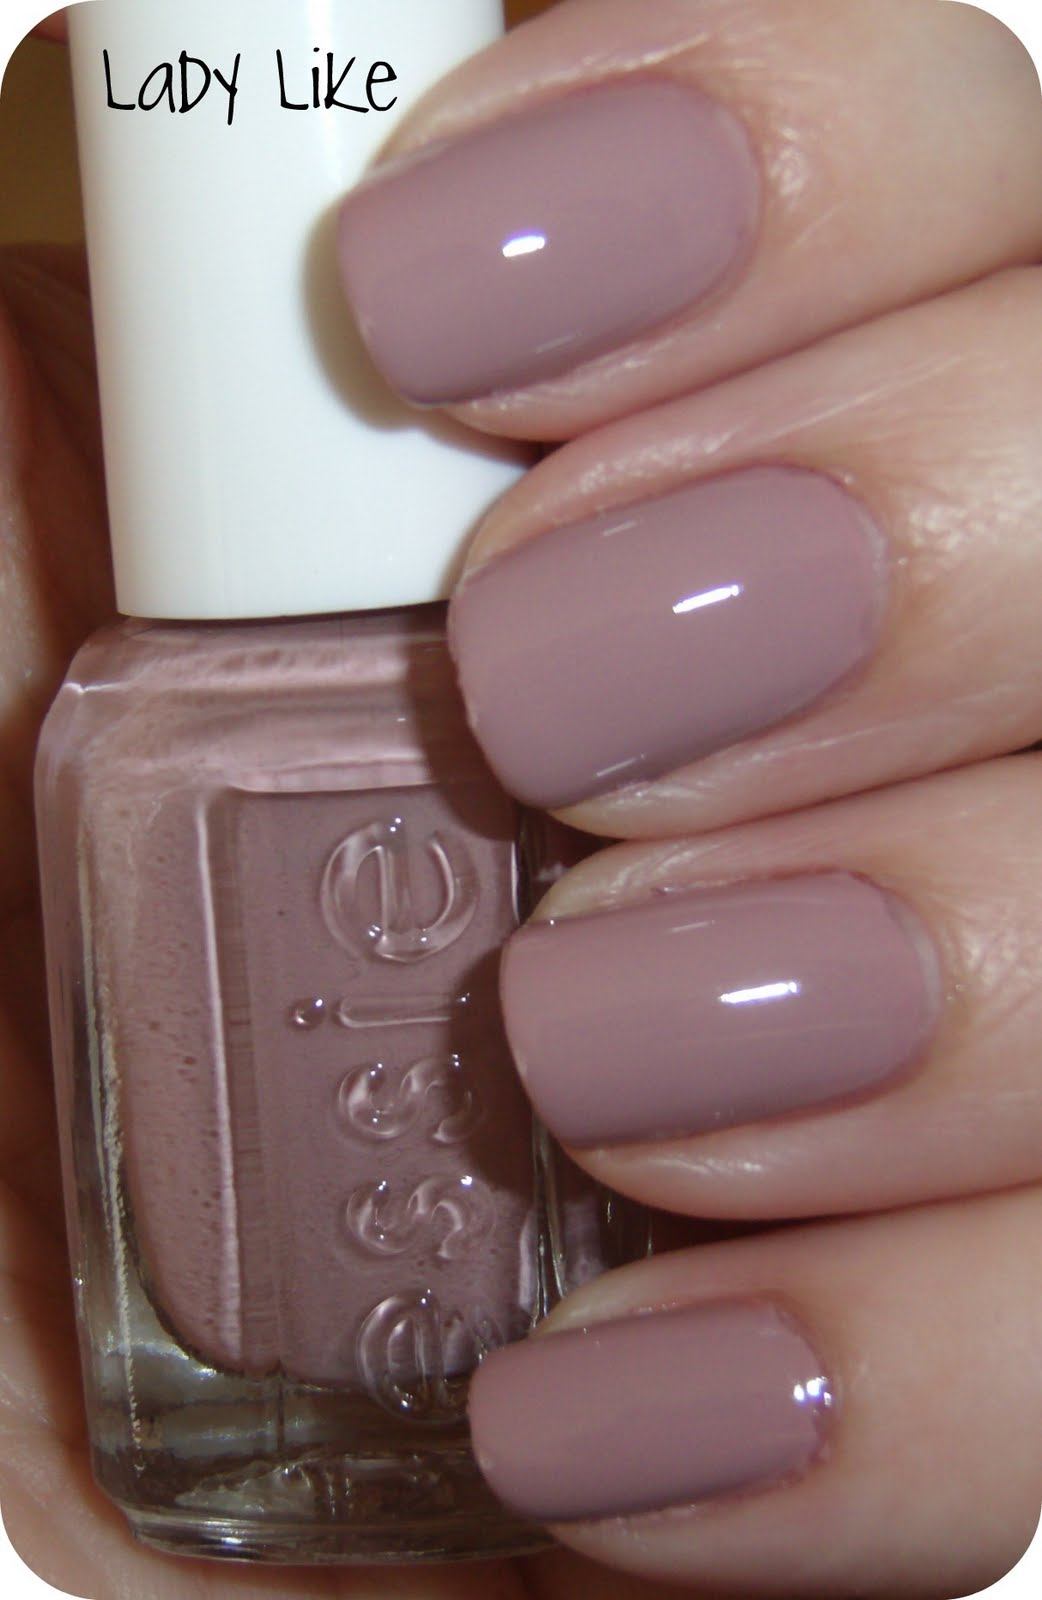 Obsessive Cosmetic Hoarders Unite!: Essie Fall 2011 Collection: Very ...